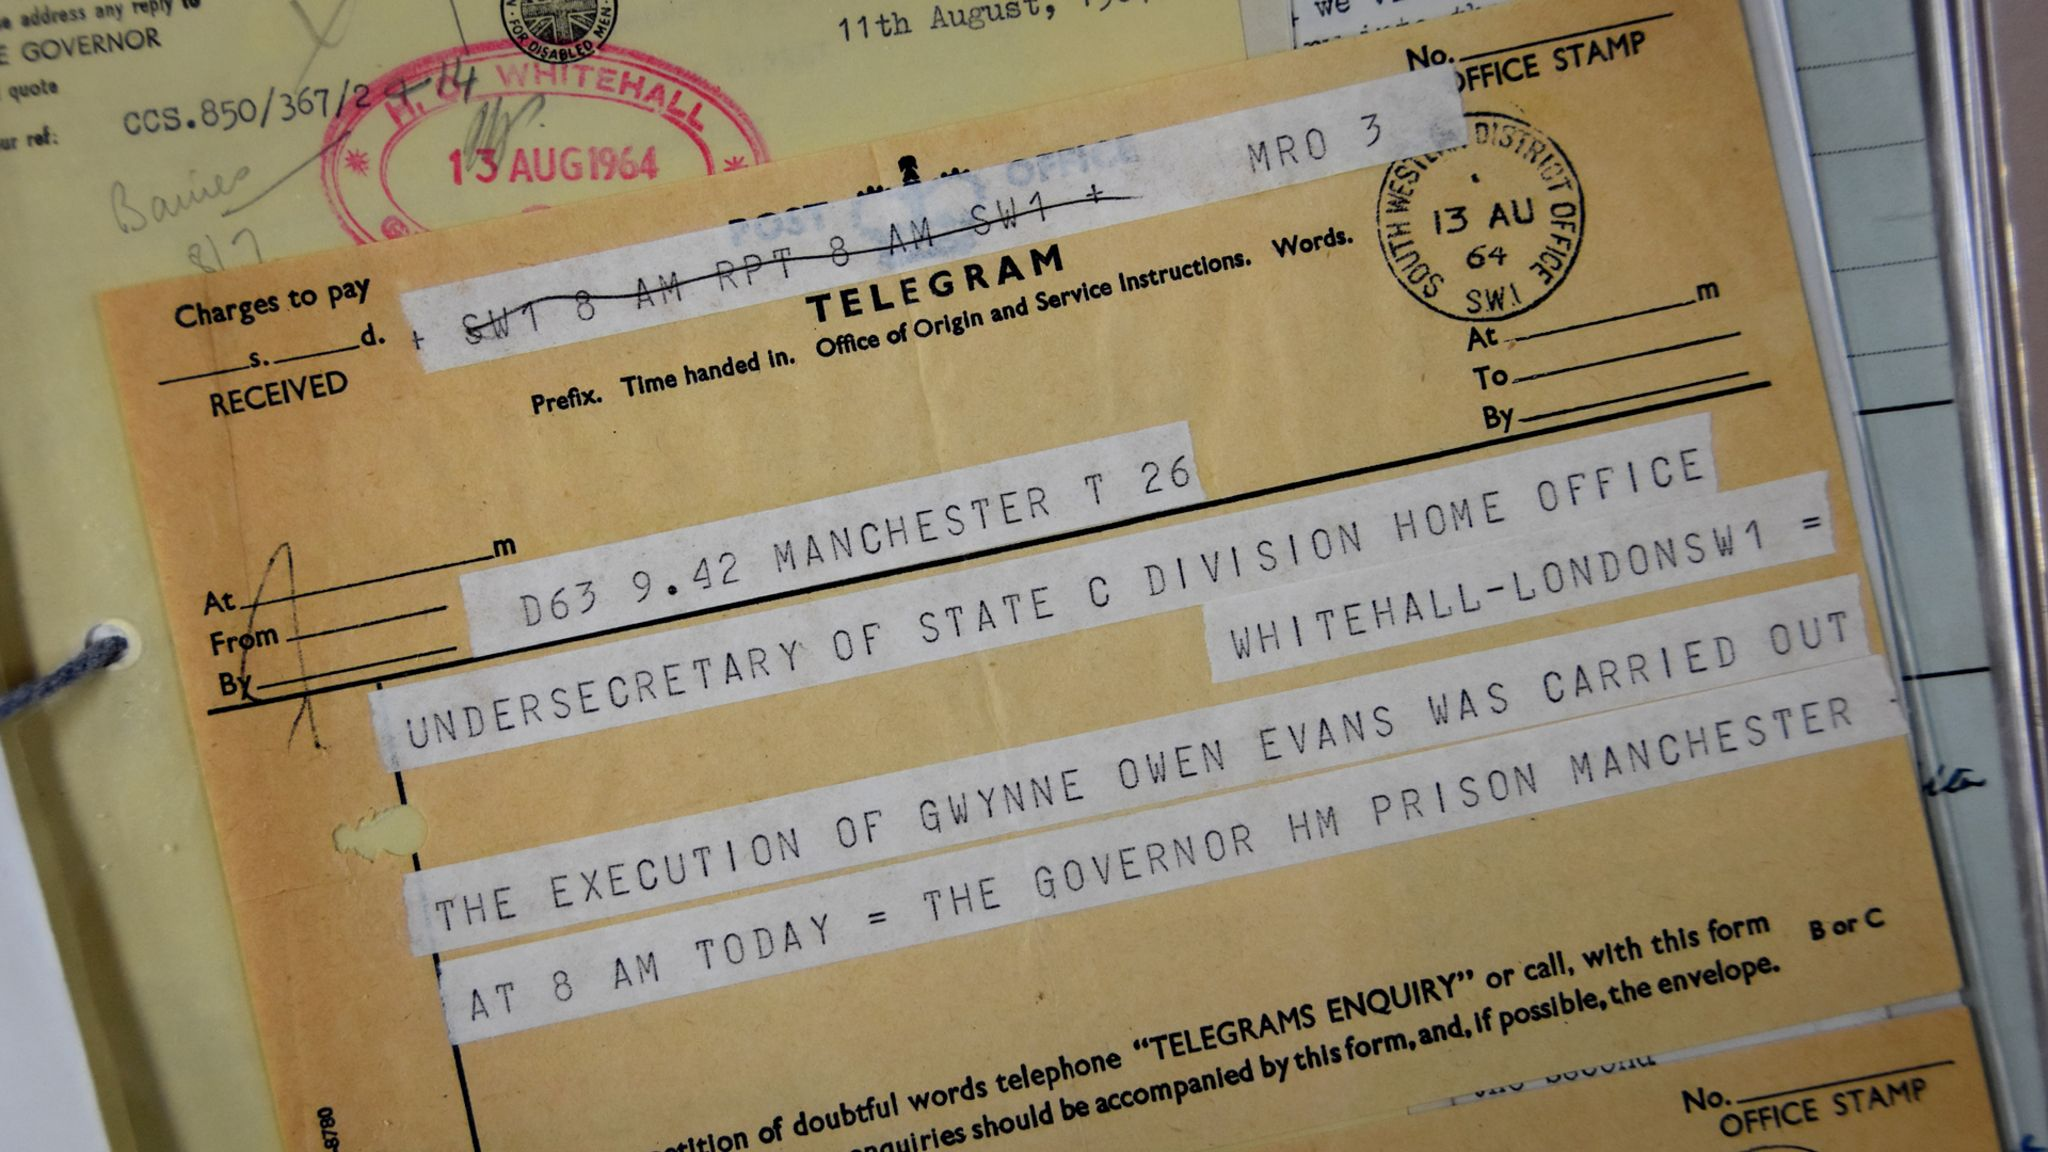 Telegram confirming the death sentence has been carried out on Gwynne Evans